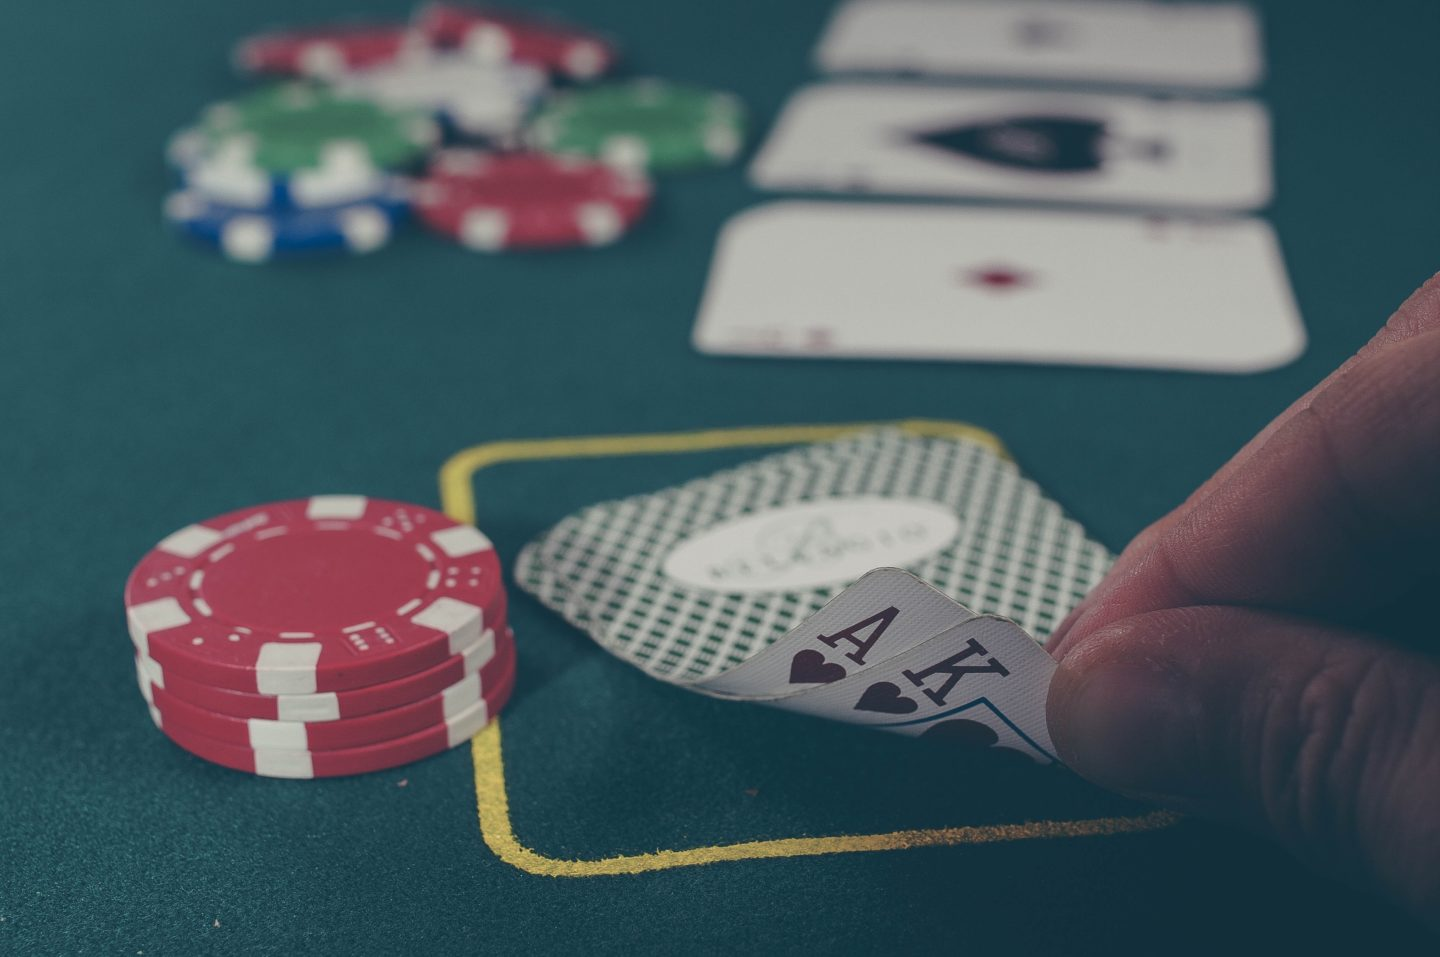 6 Romantic Creative Ways To Have An Intimate Small Wedding - Casino